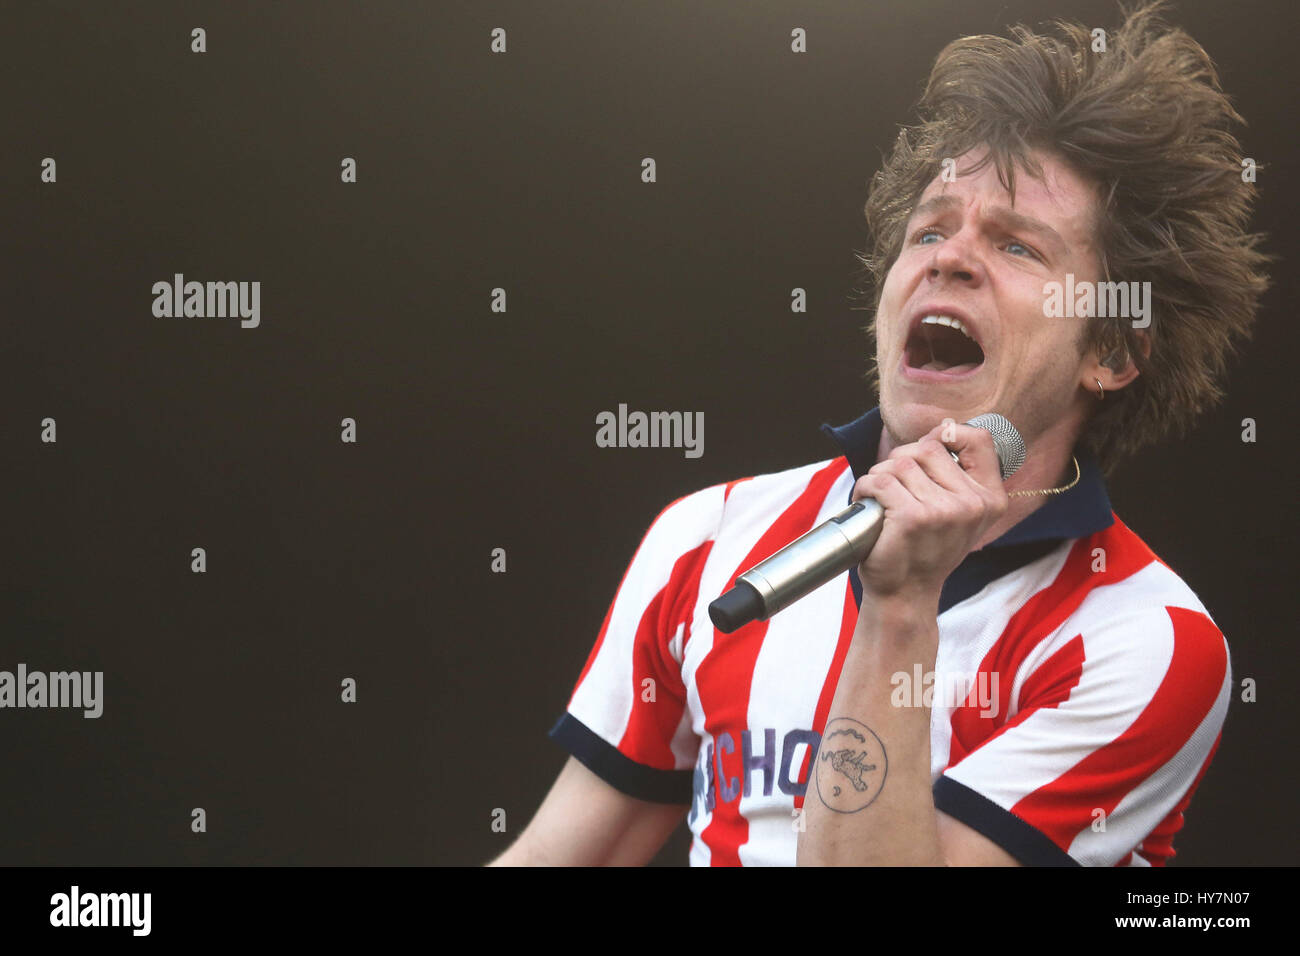 Matt Shultz, singer of the US band Cage the Elephant, performs during a concert at the Lollapalooza Music Festival - Stock Image